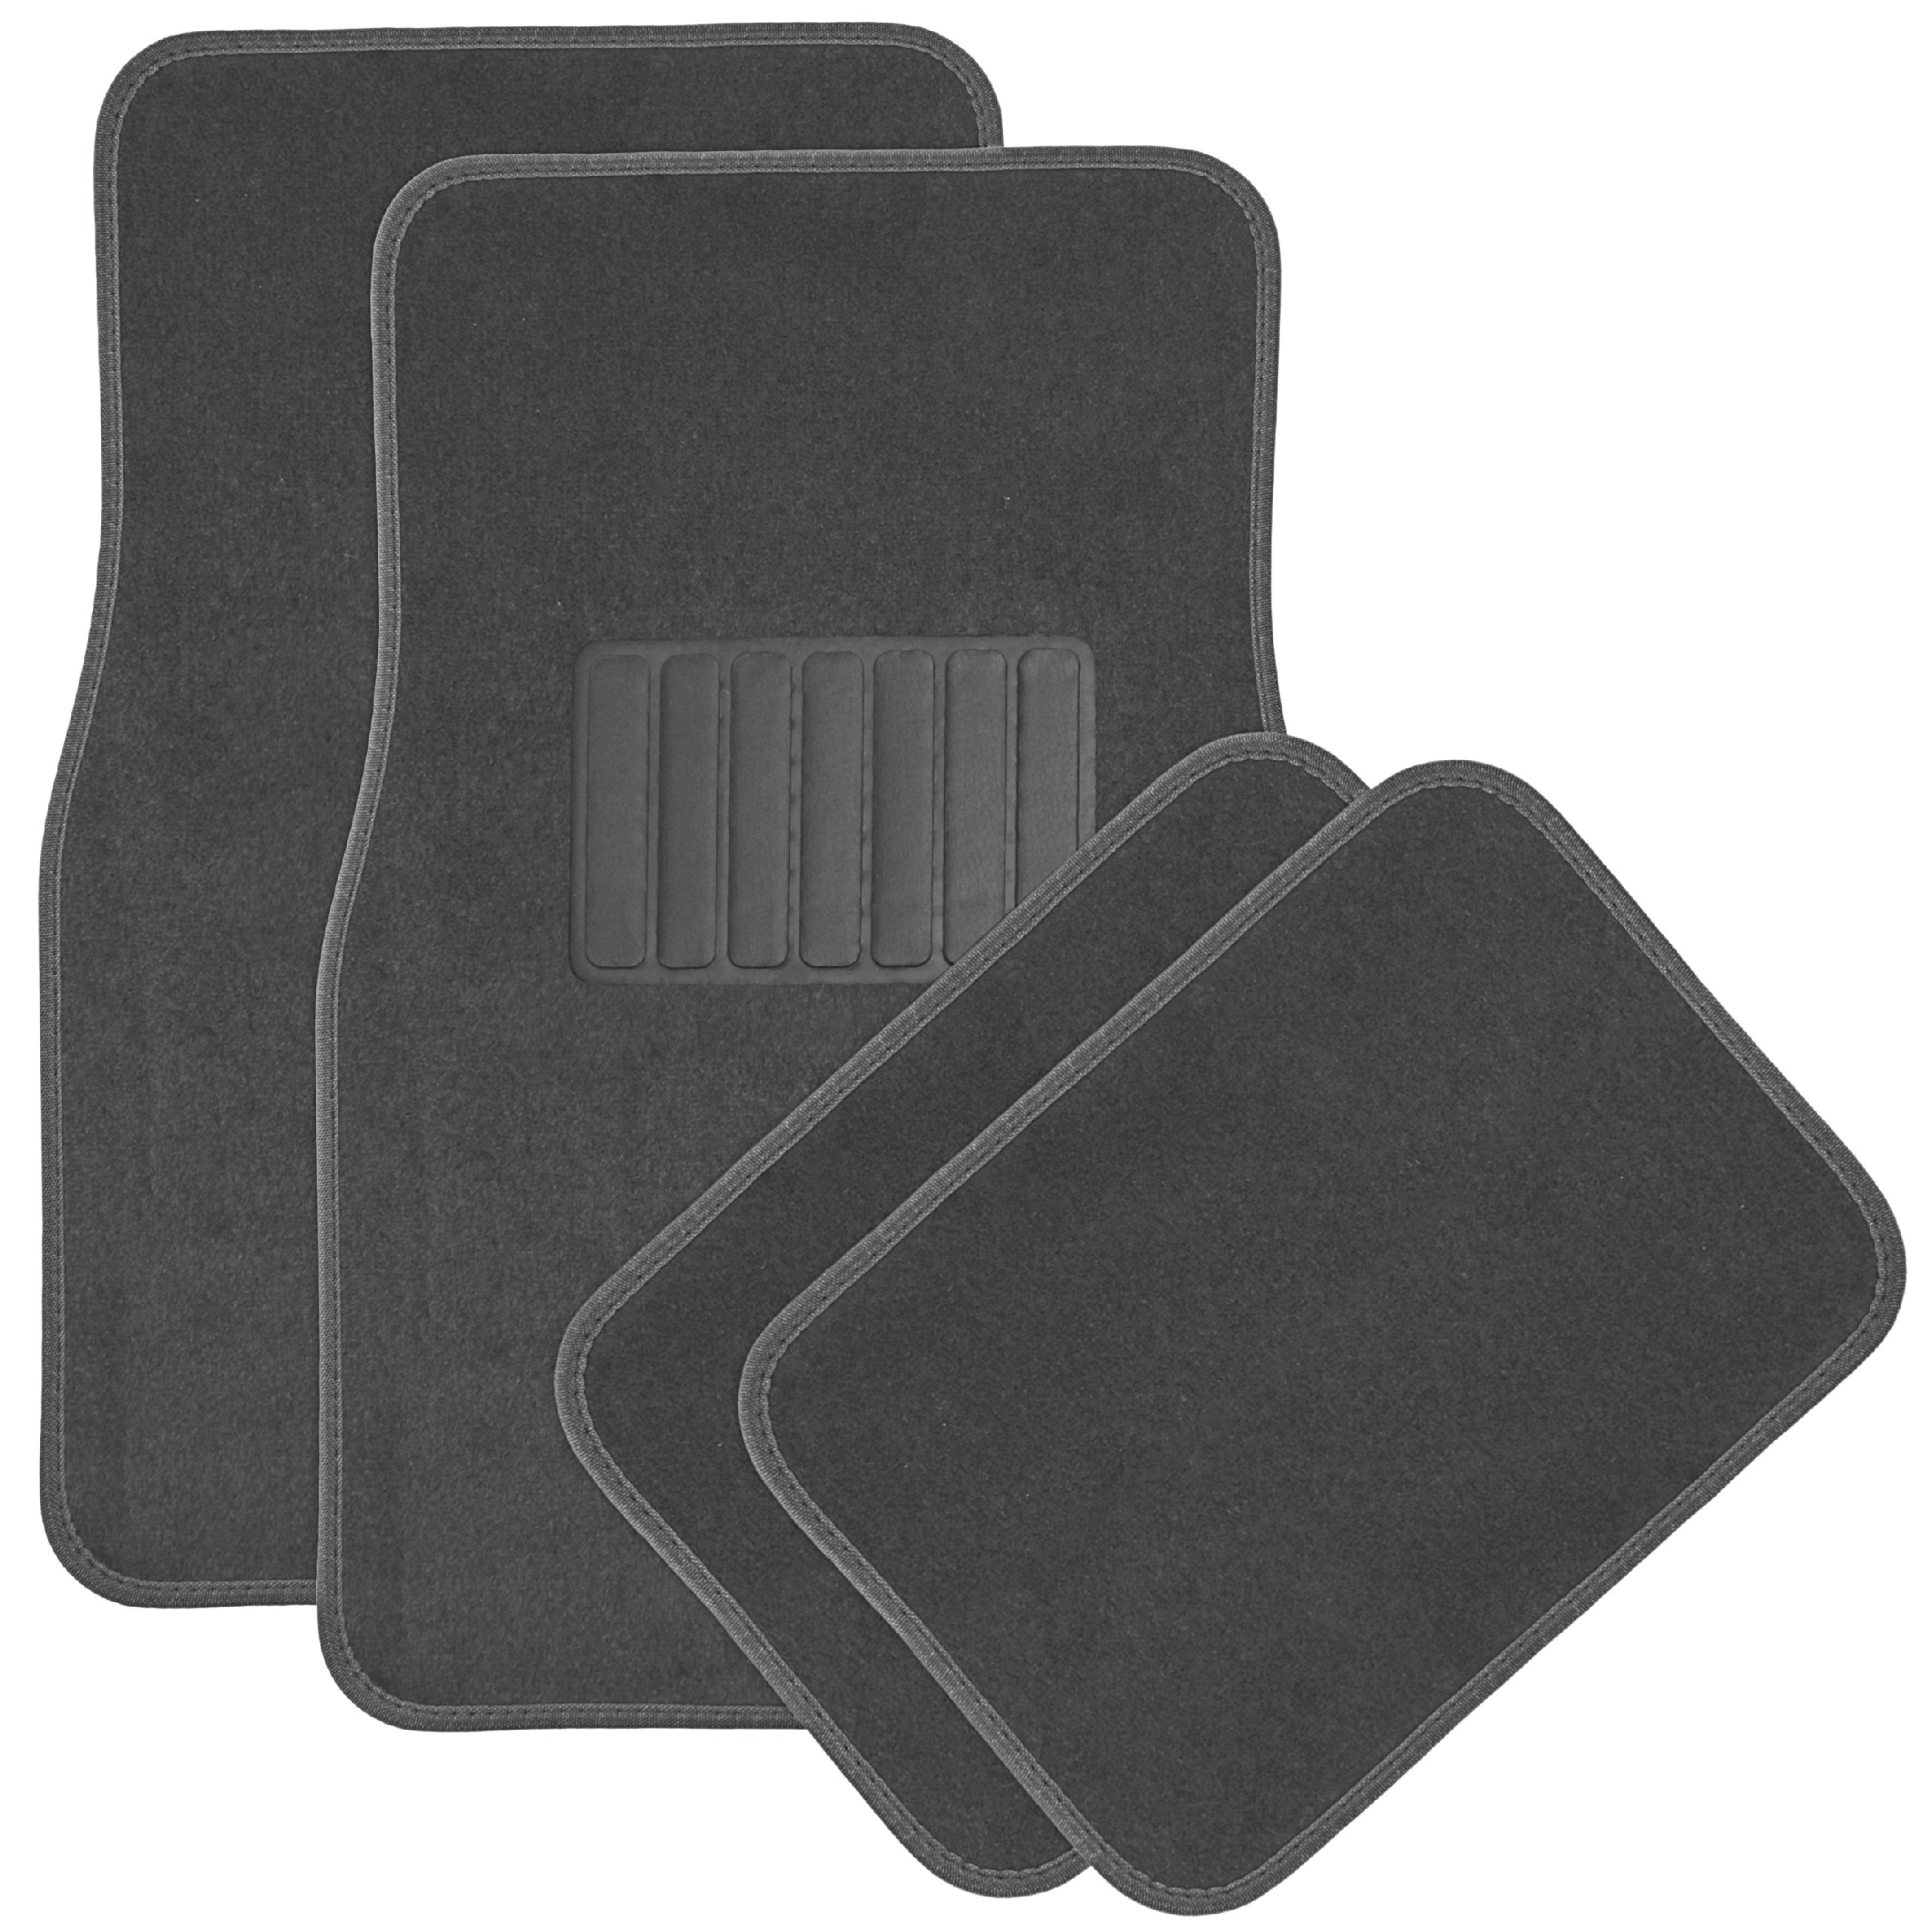 rubber mats fit floor customer best vans suvs reviews rated pcr for trucks in helpful and universal front maggift car